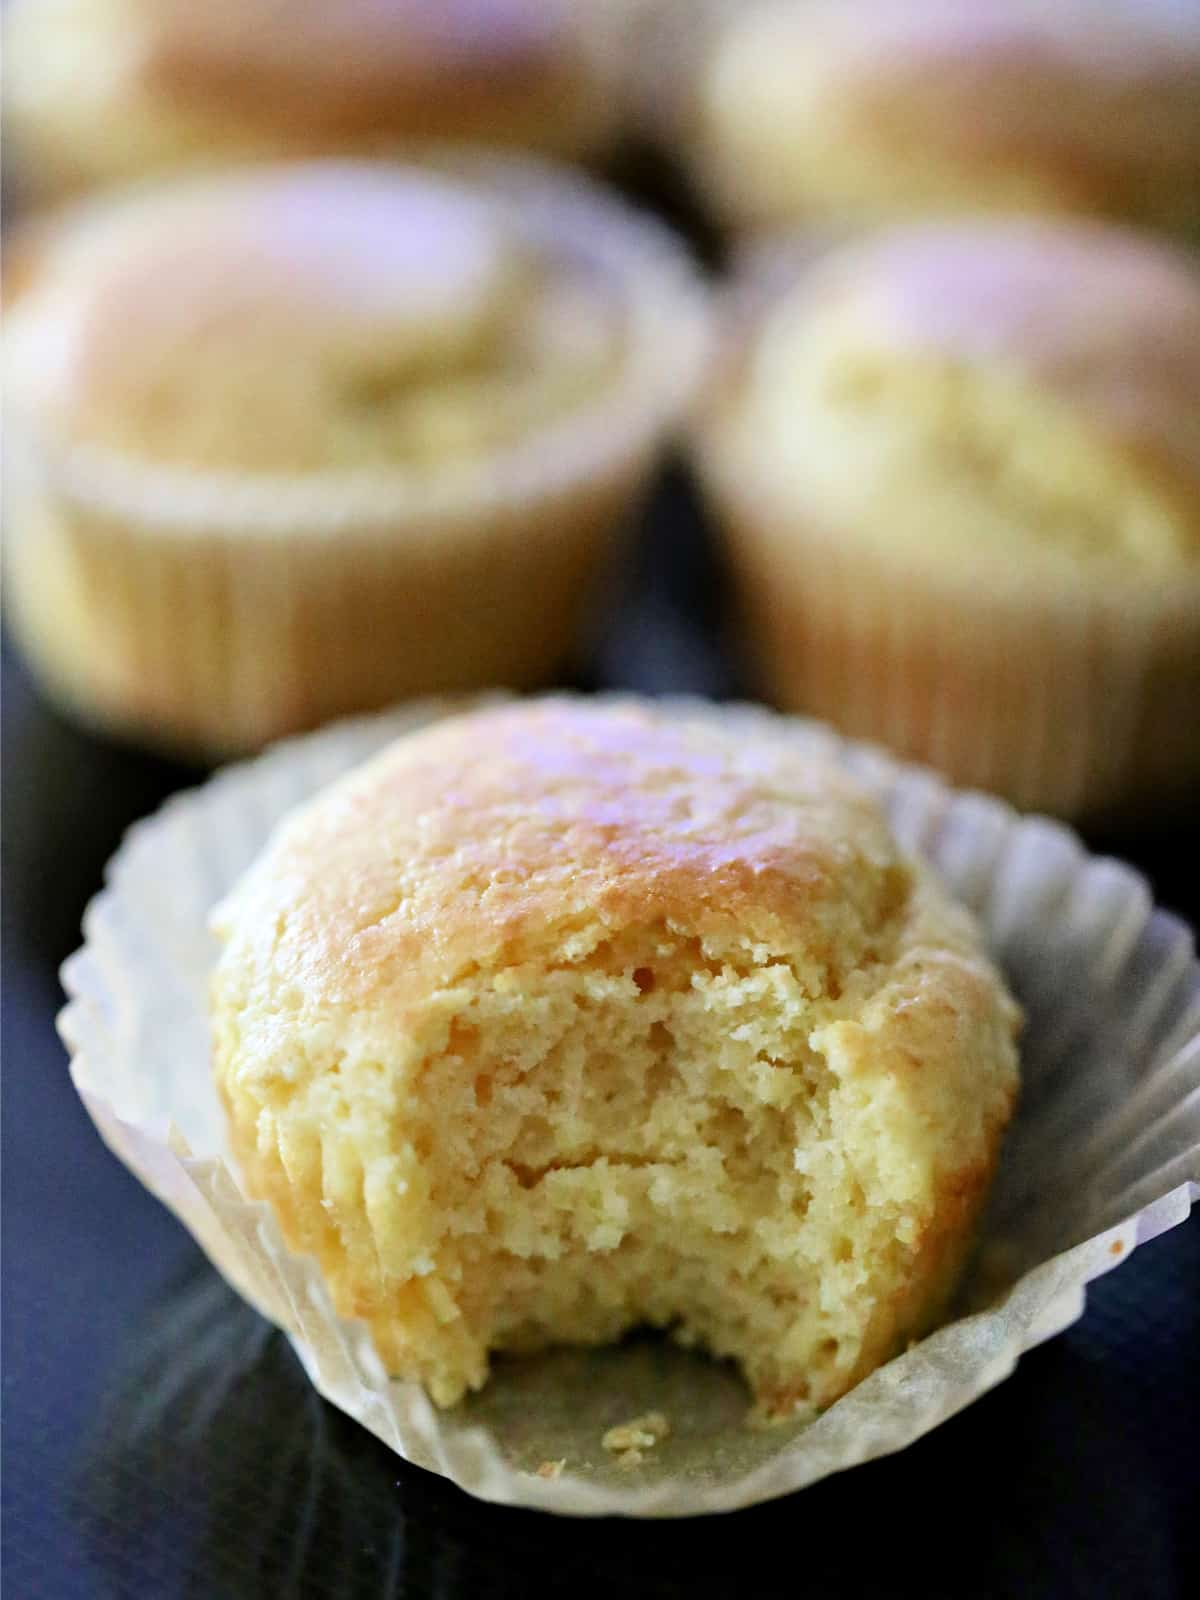 a sweet cornbread muffin with a bite taken out of it